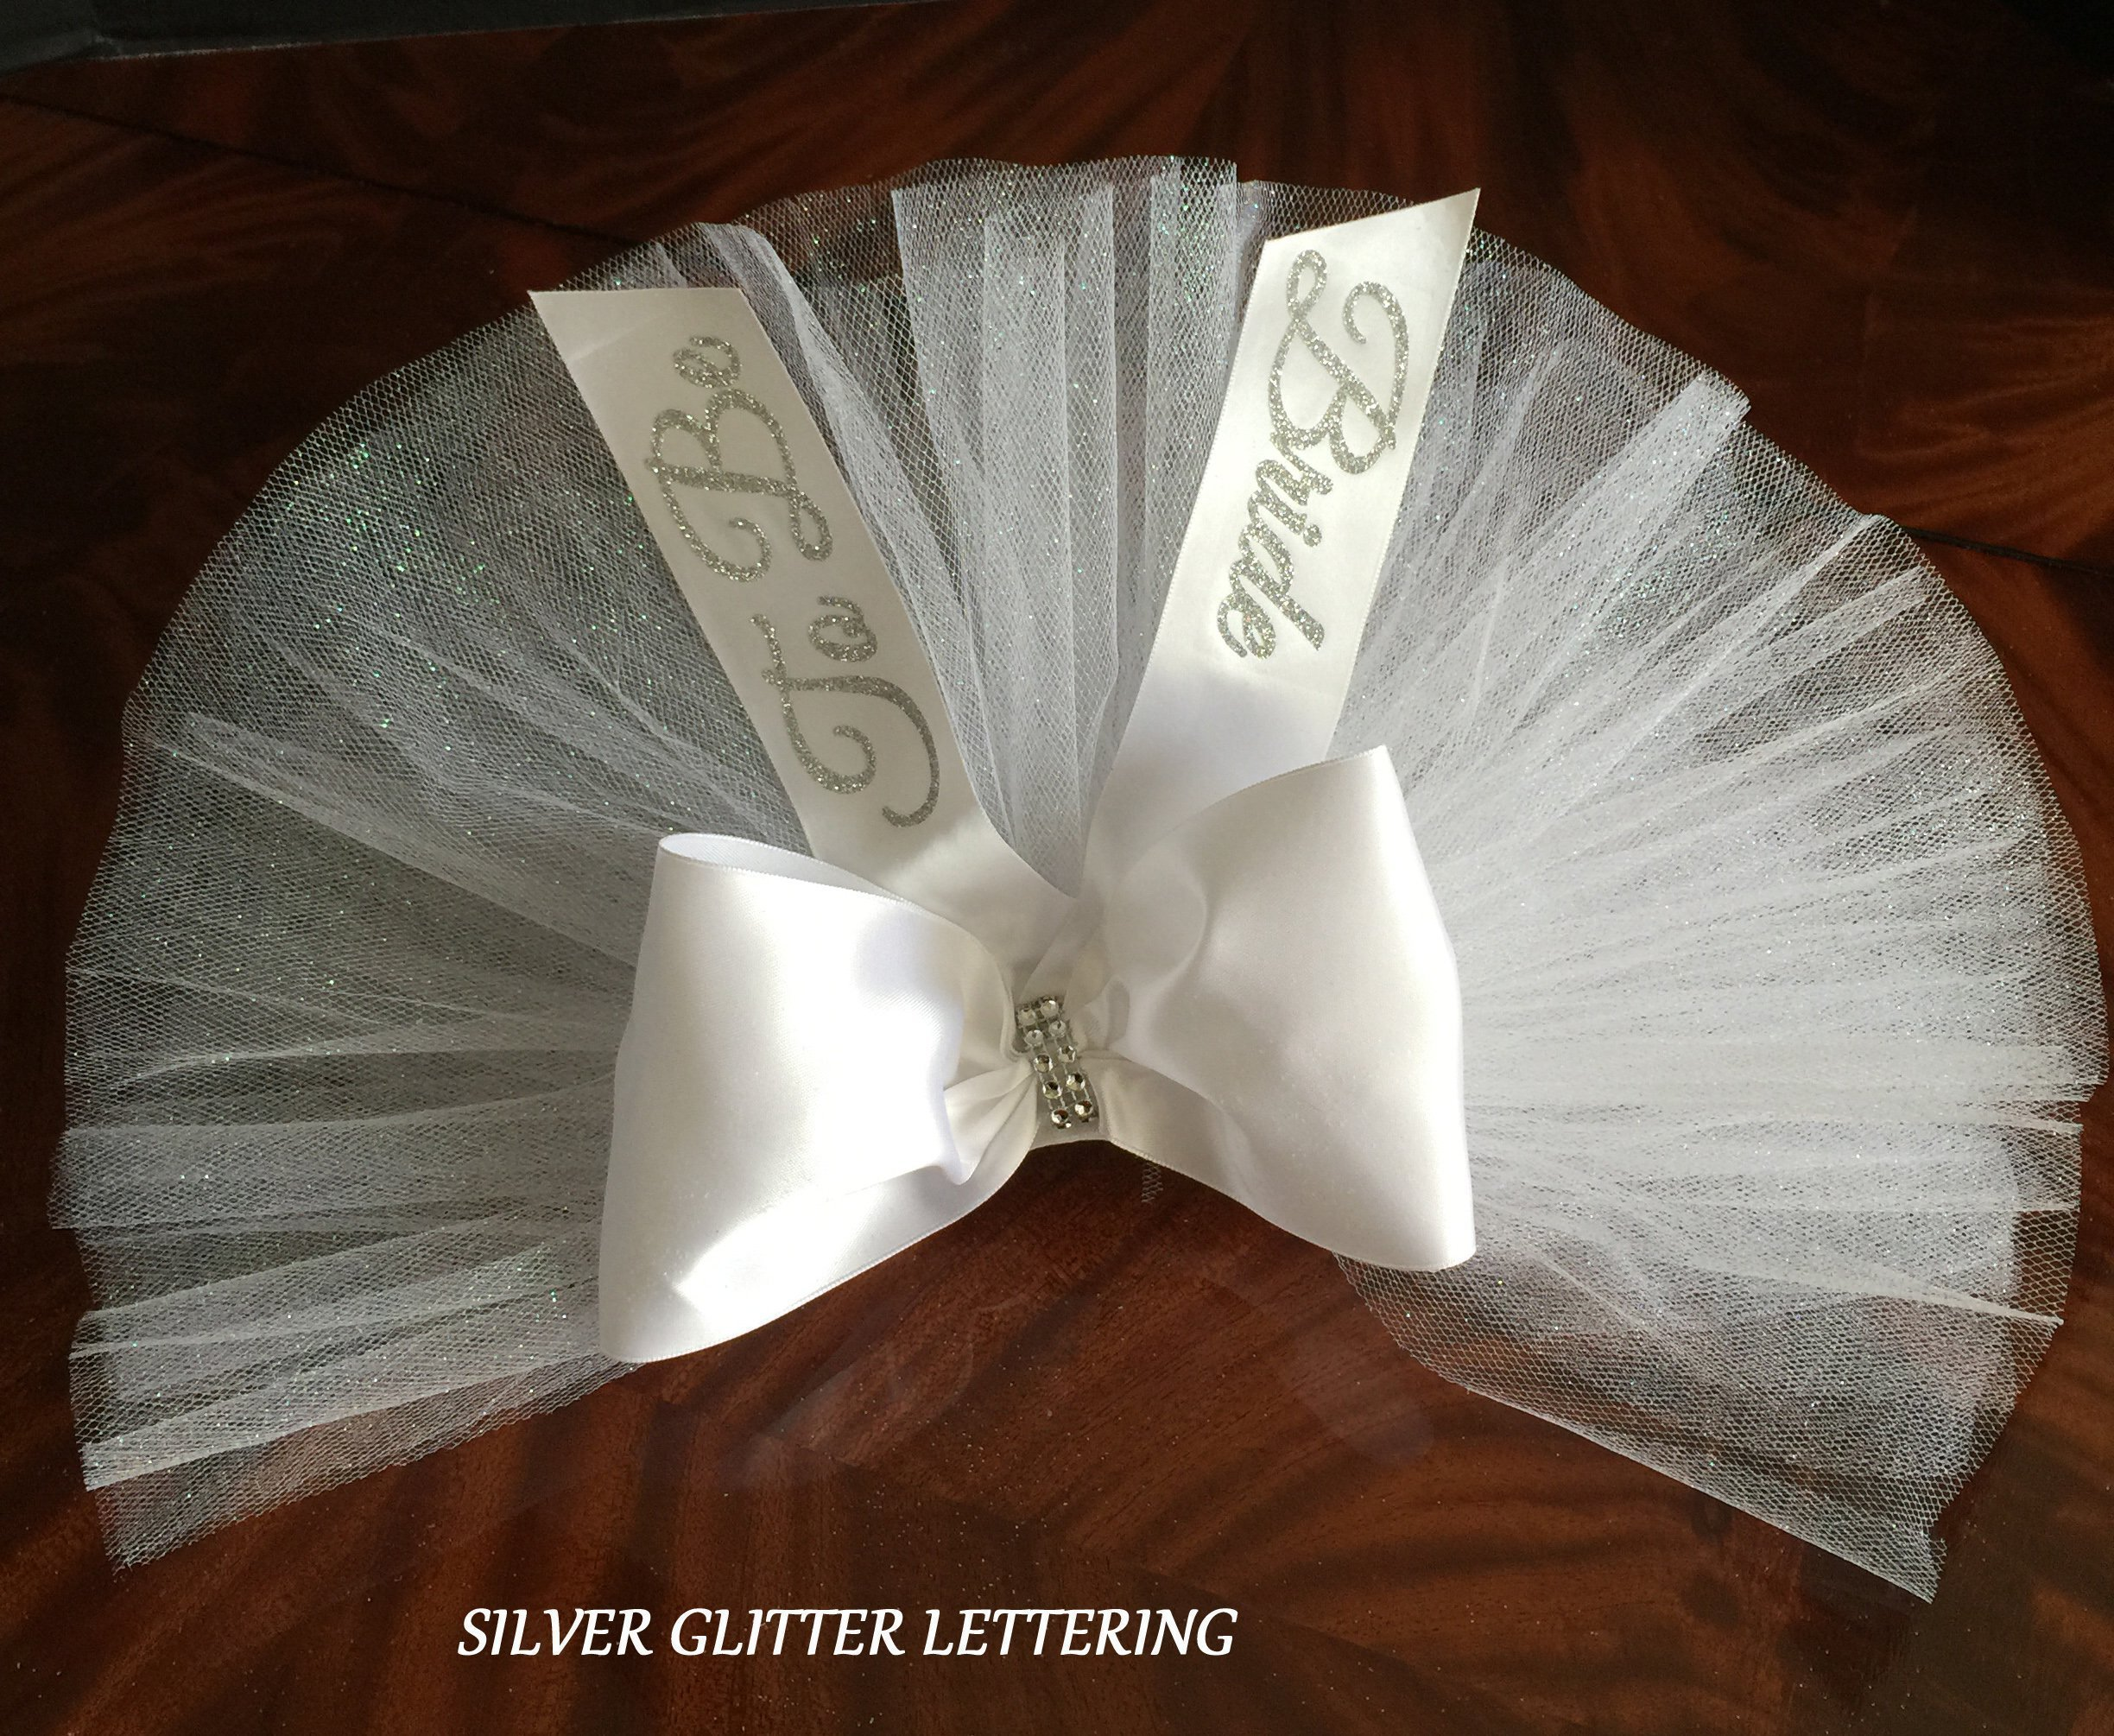 Booty Veil for the Bride To Be, Bachelorette Booty TuTu - 1 piece PERSONALIZED Bachelorette TUTU veil for only $38. Designed by CYA Bikini Veils for SashANation